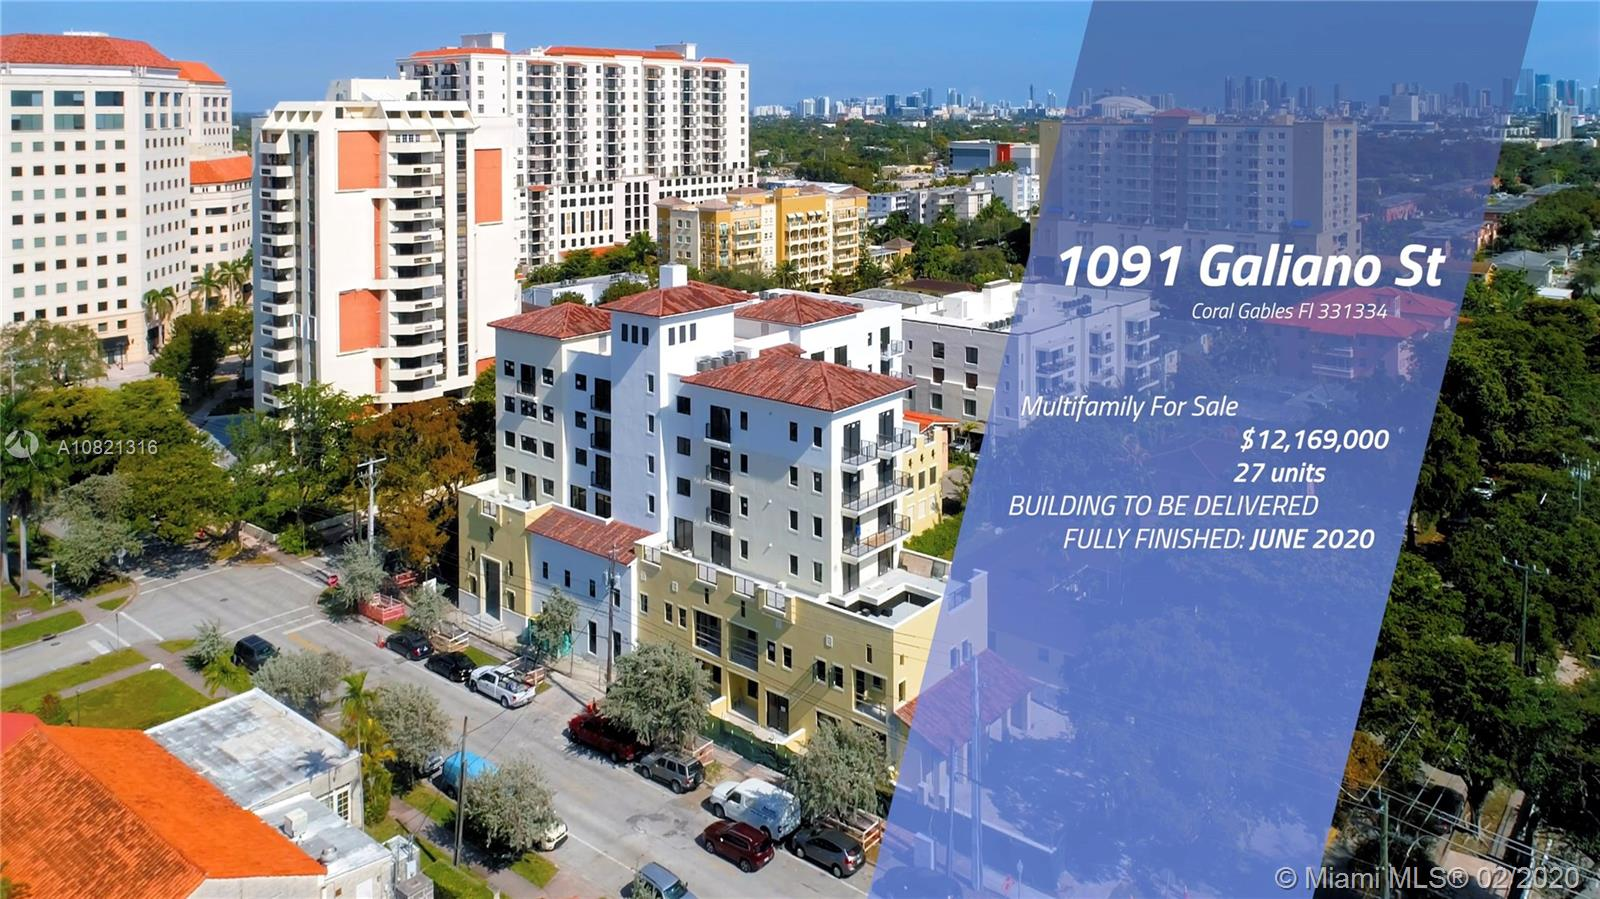 1091 Galiano St, Coral Gables, FL 33134